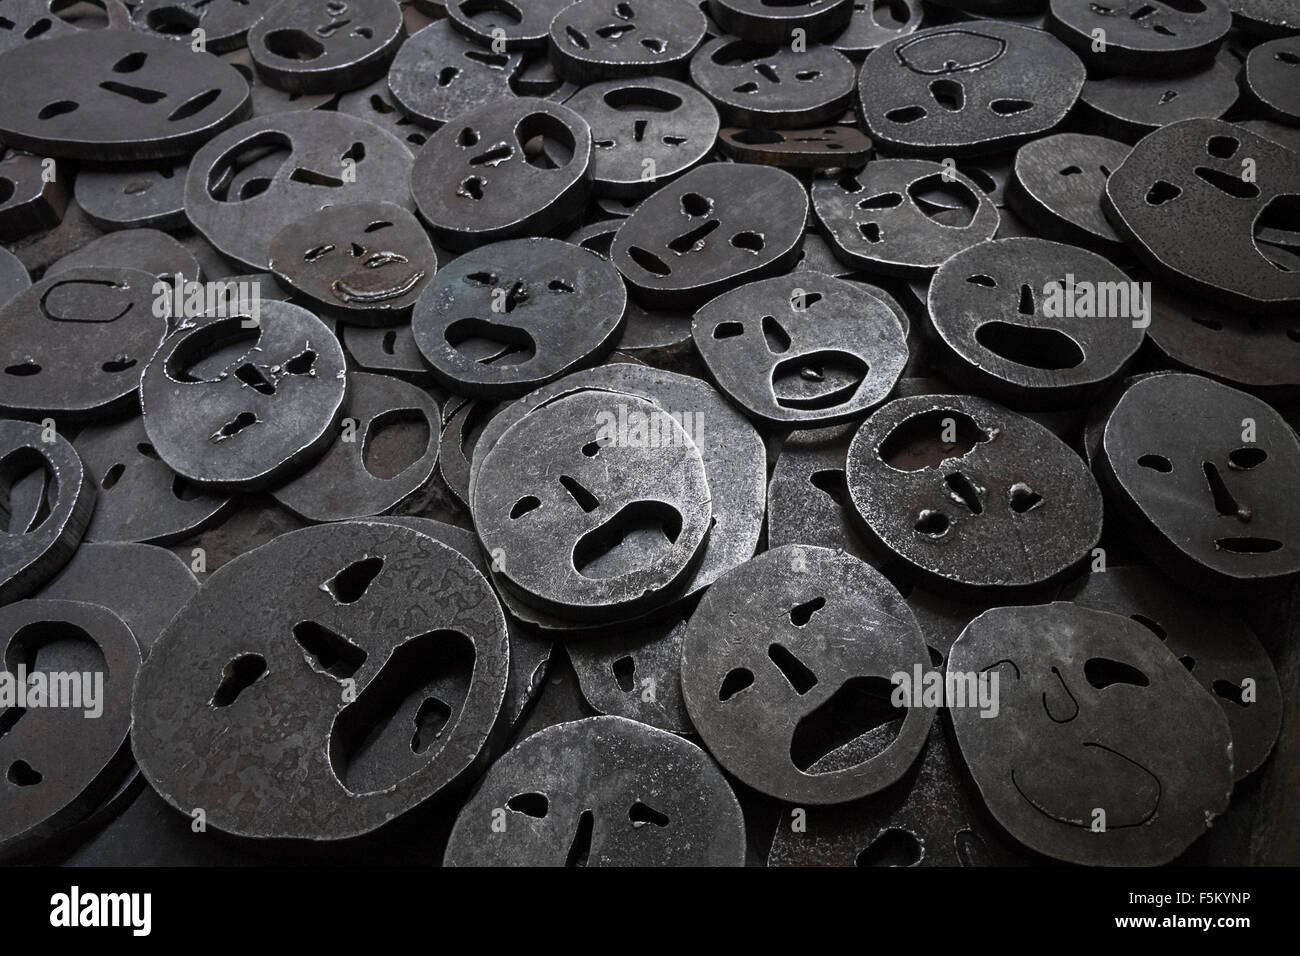 Close up detail of steel faces by artist Menashe Kadishman, exhibited in the Memory Void, Jewish Museum, Berlin, - Stock Image